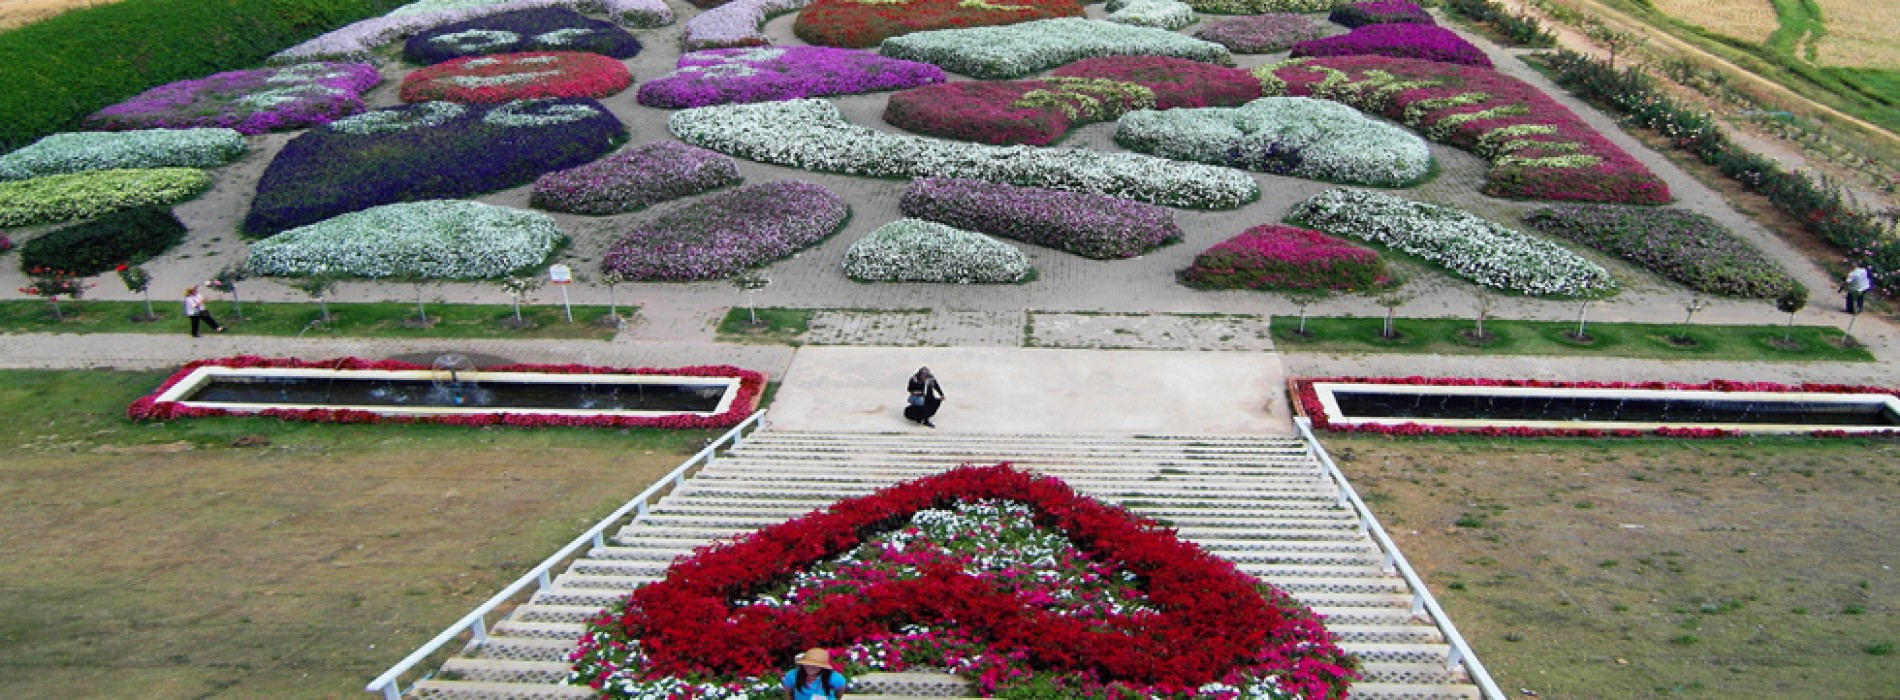 Thailand's Flora Park Festival welcomes visitors with flower displays and floral spectacles